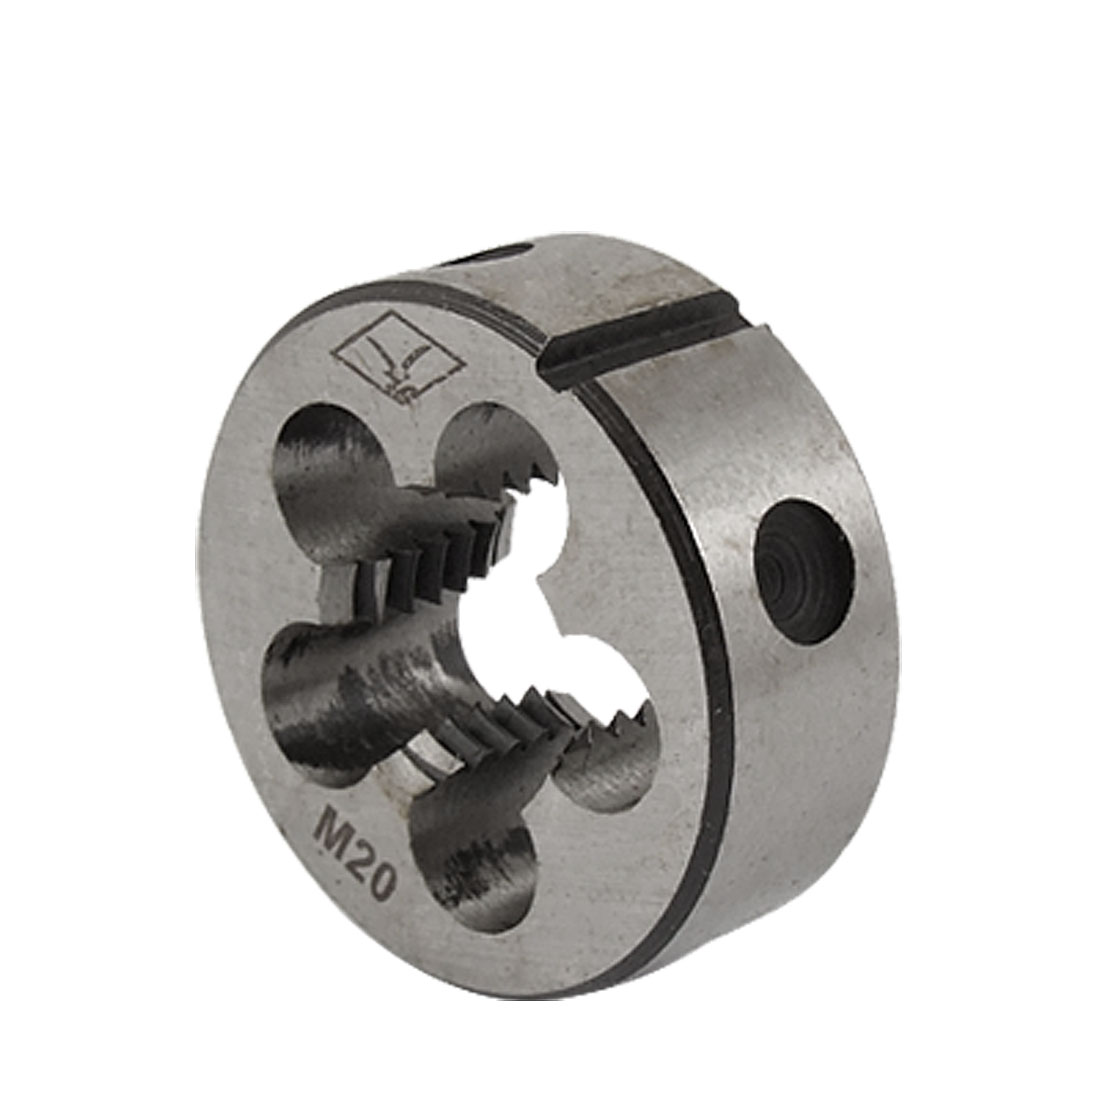 M20 45mm Outside Dia Coarse Thread Cutting Tool Round Die